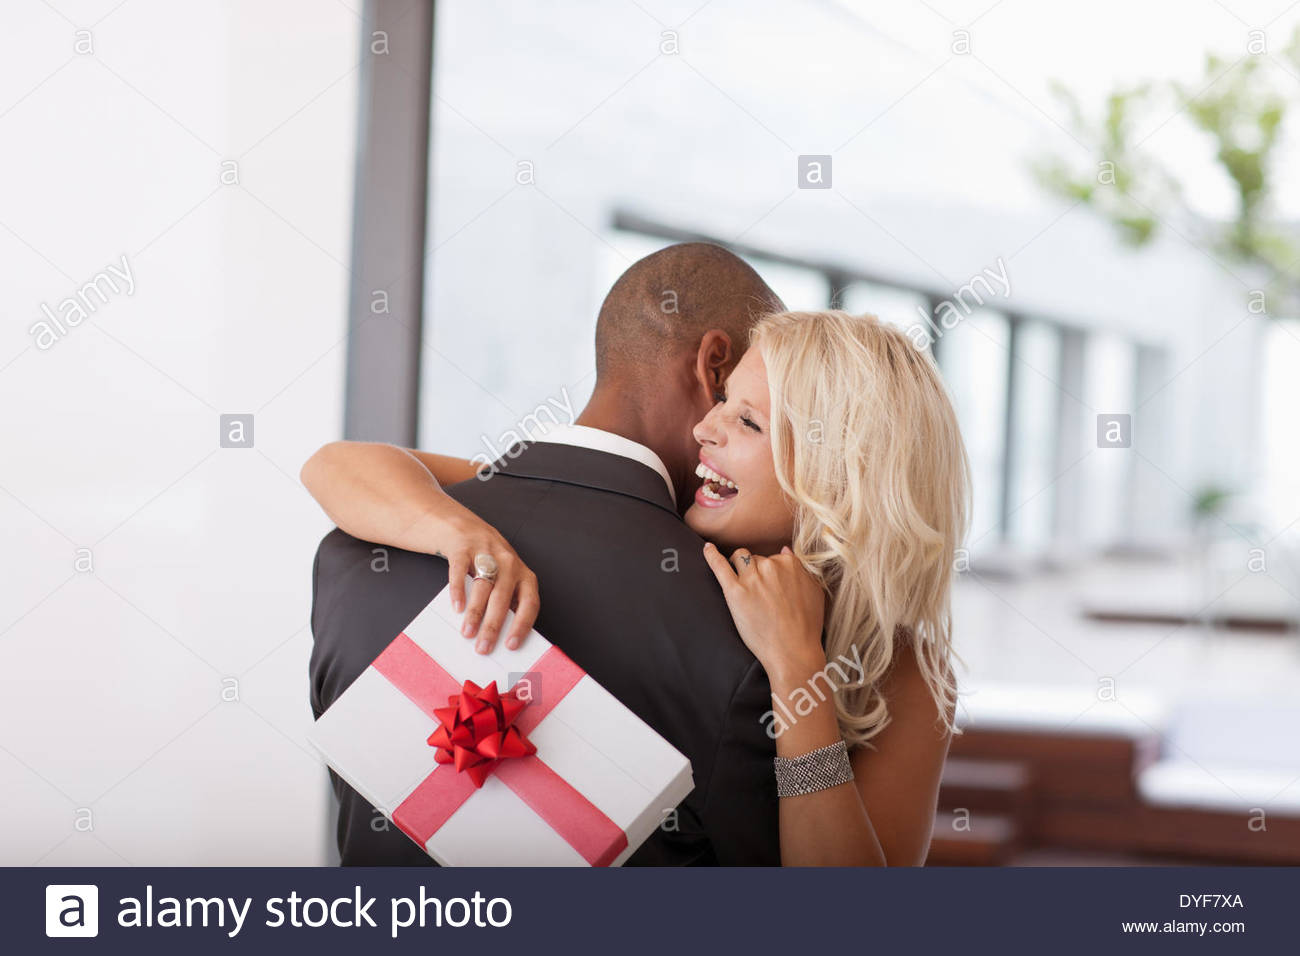 Woman with gift hugging man - Stock Image